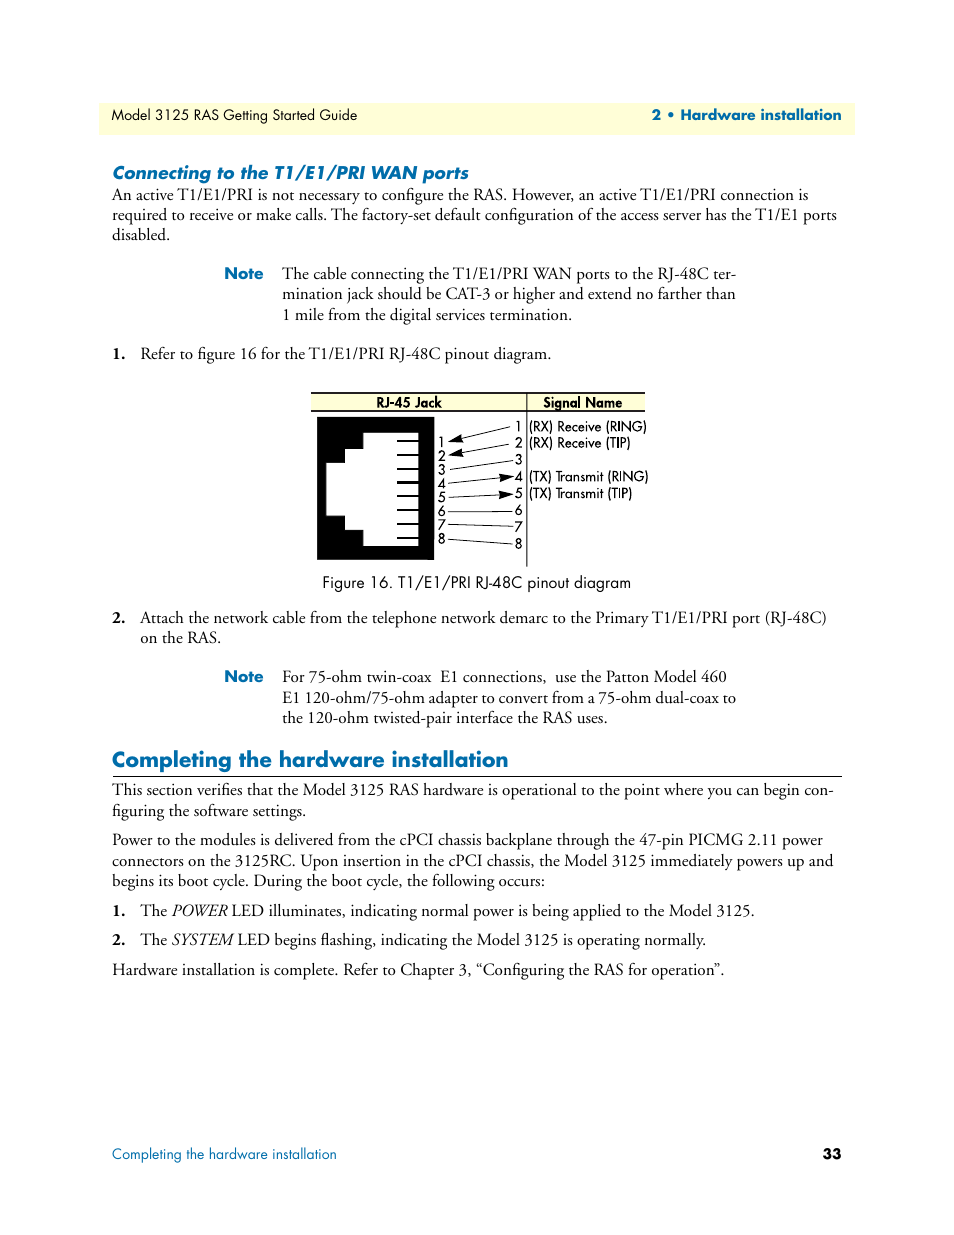 Rj 48c T1 Wiring Diagram Library Pri Connecting To The E1 Wan Ports Completing Hardware Installation